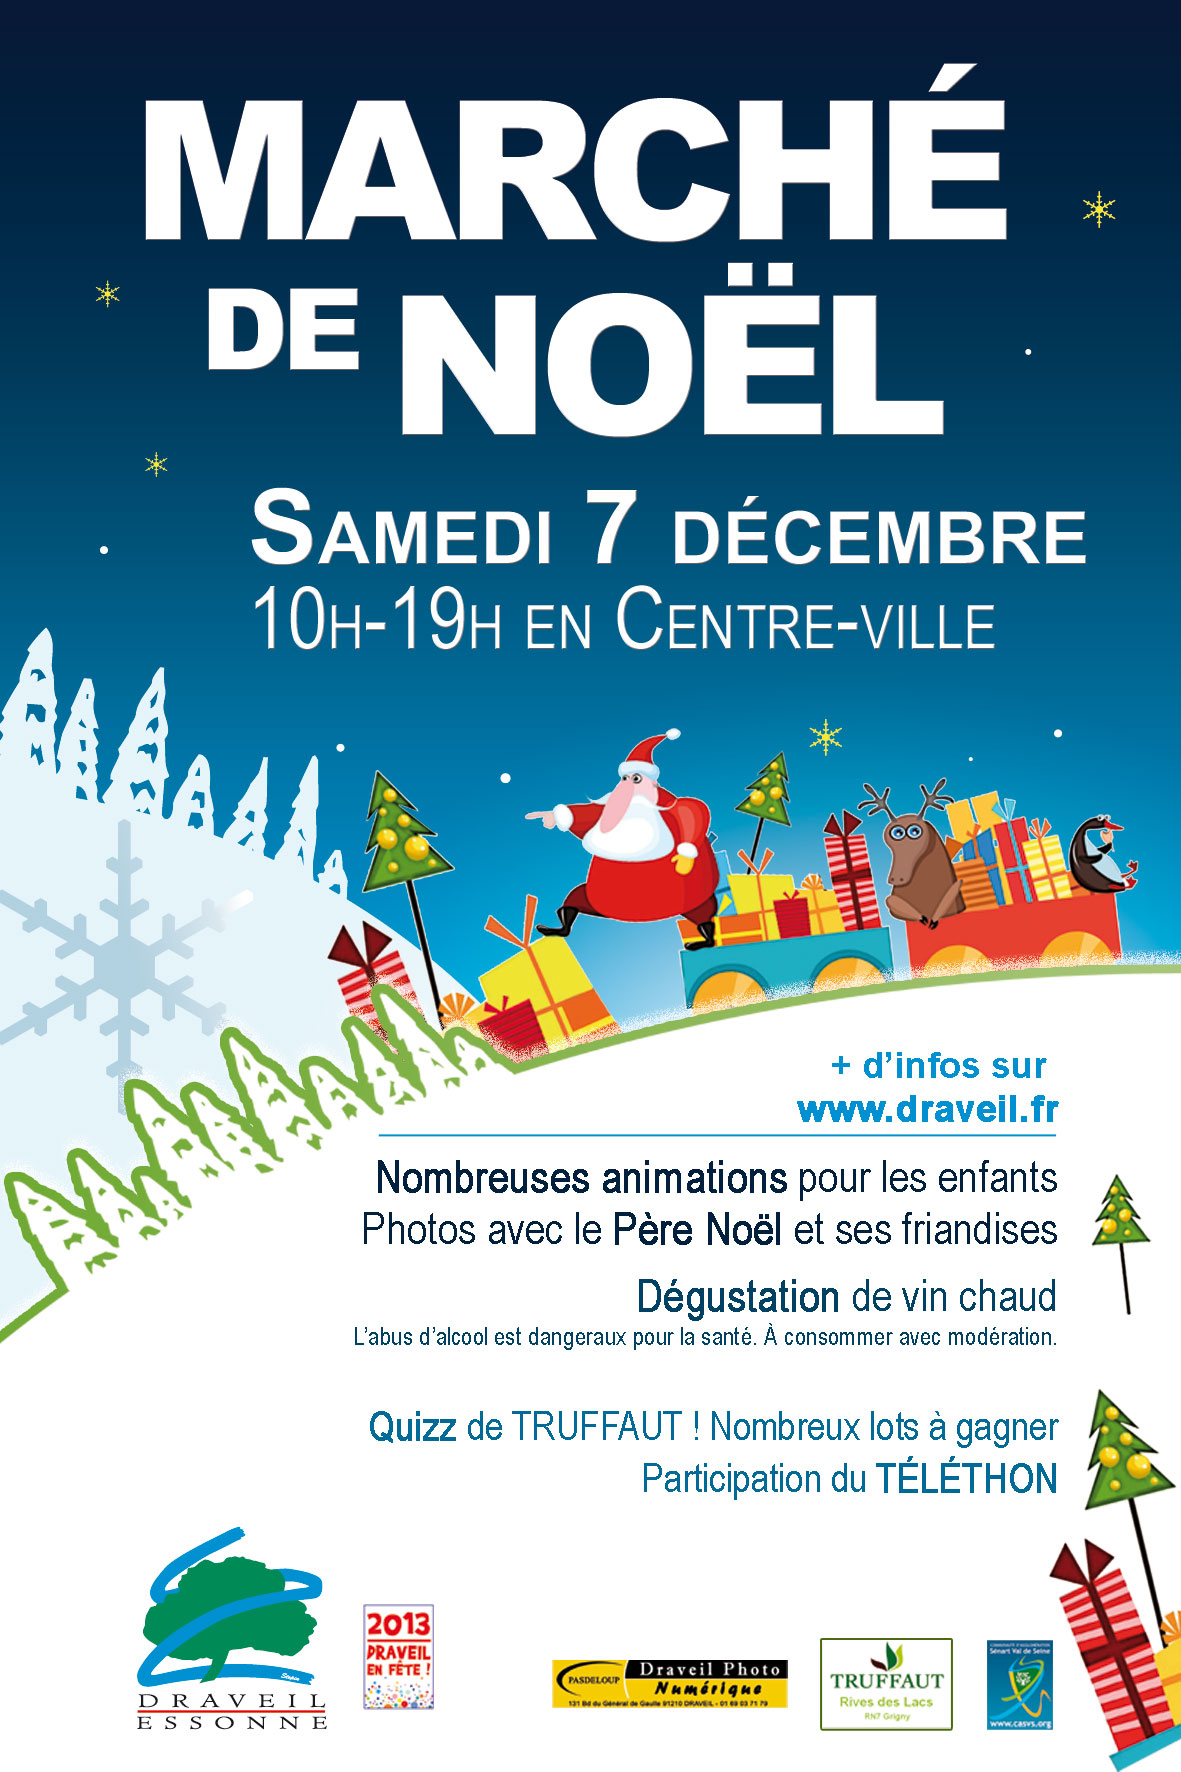 http://www.draveil.fr/fileadmin/draveil/MEDIA/Cultures_et_evenements/2013-marche-noel.jpg